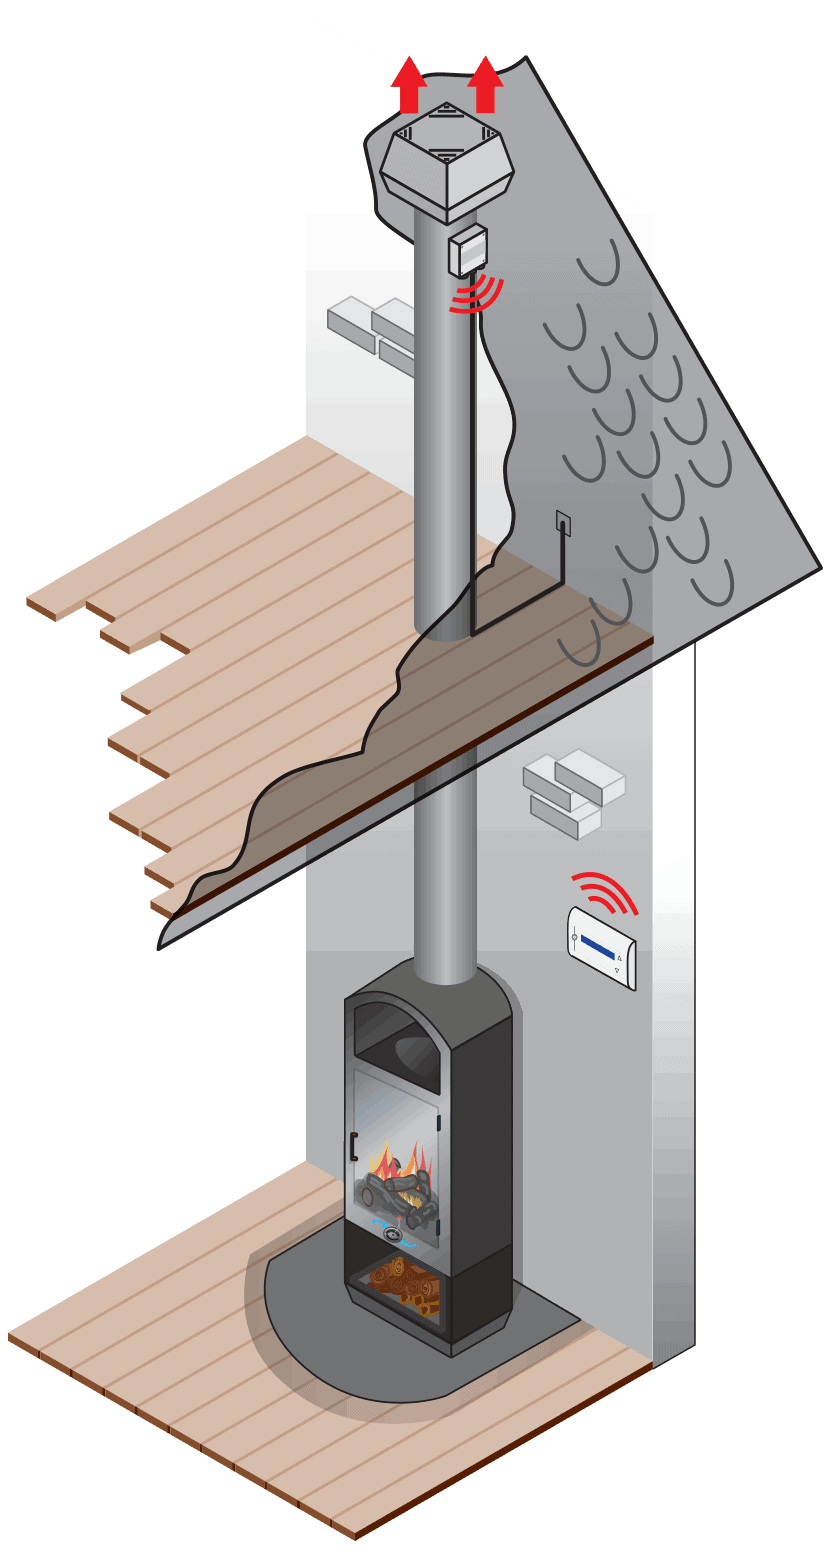 chimney fan illustration_EW41